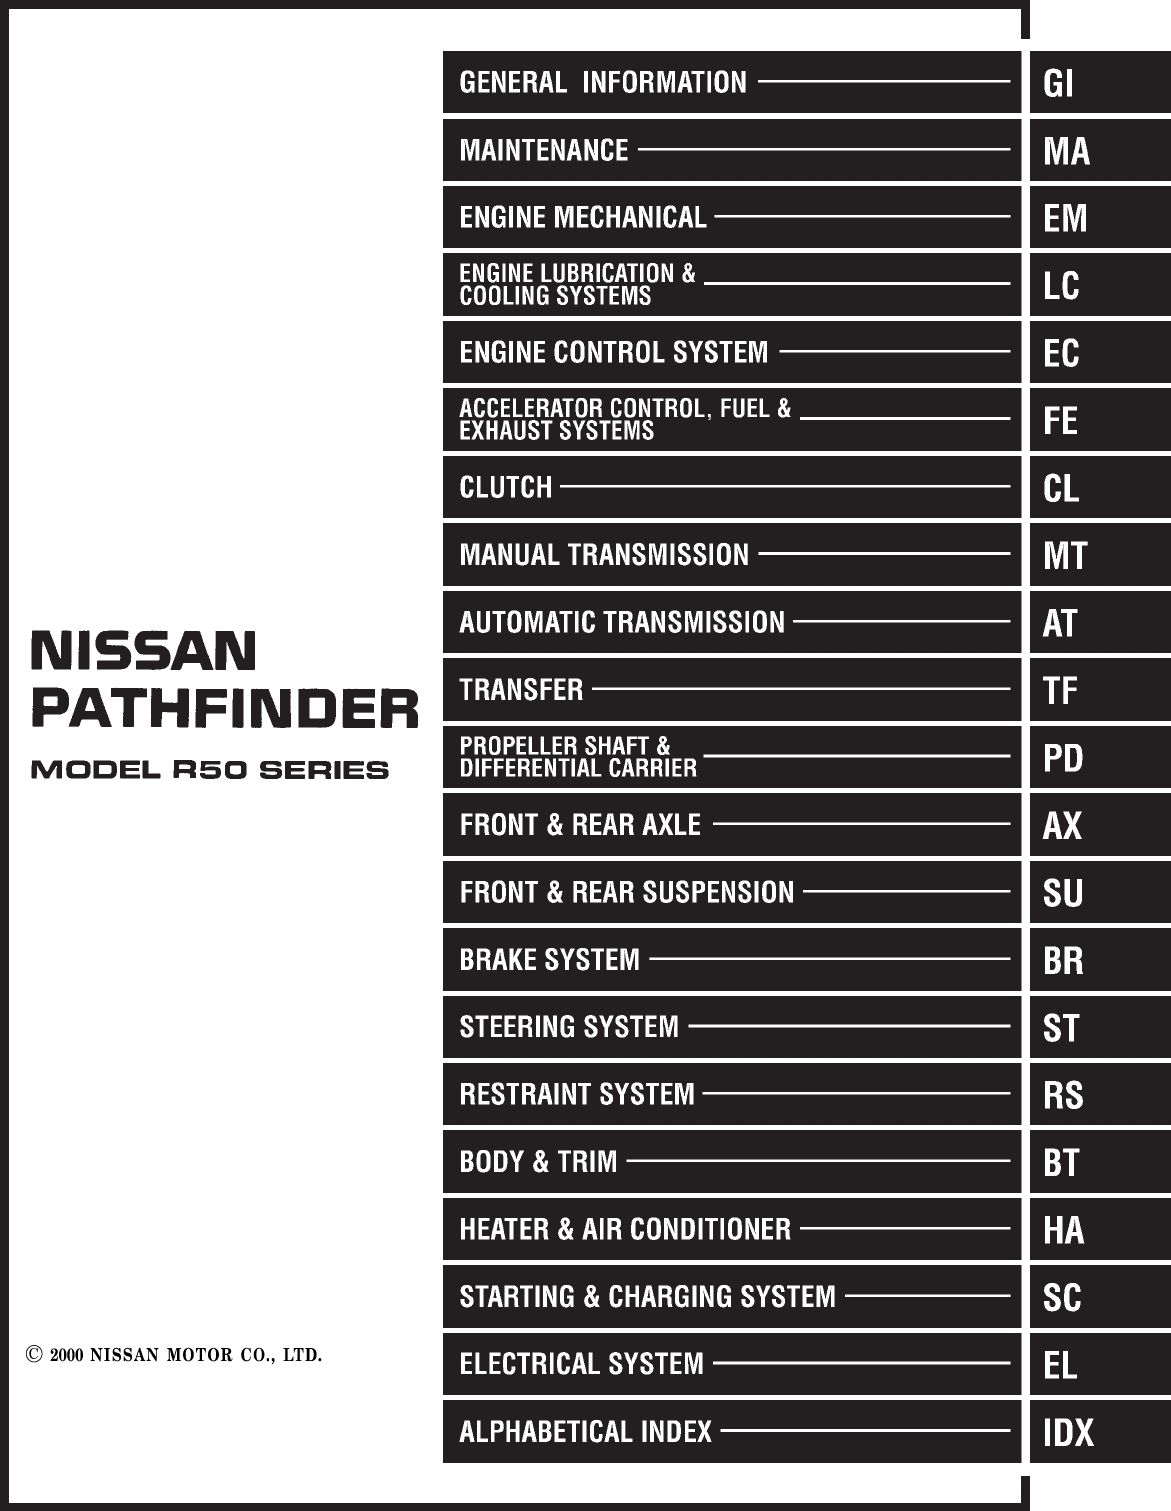 1995 nissan pathfinder manual pdf